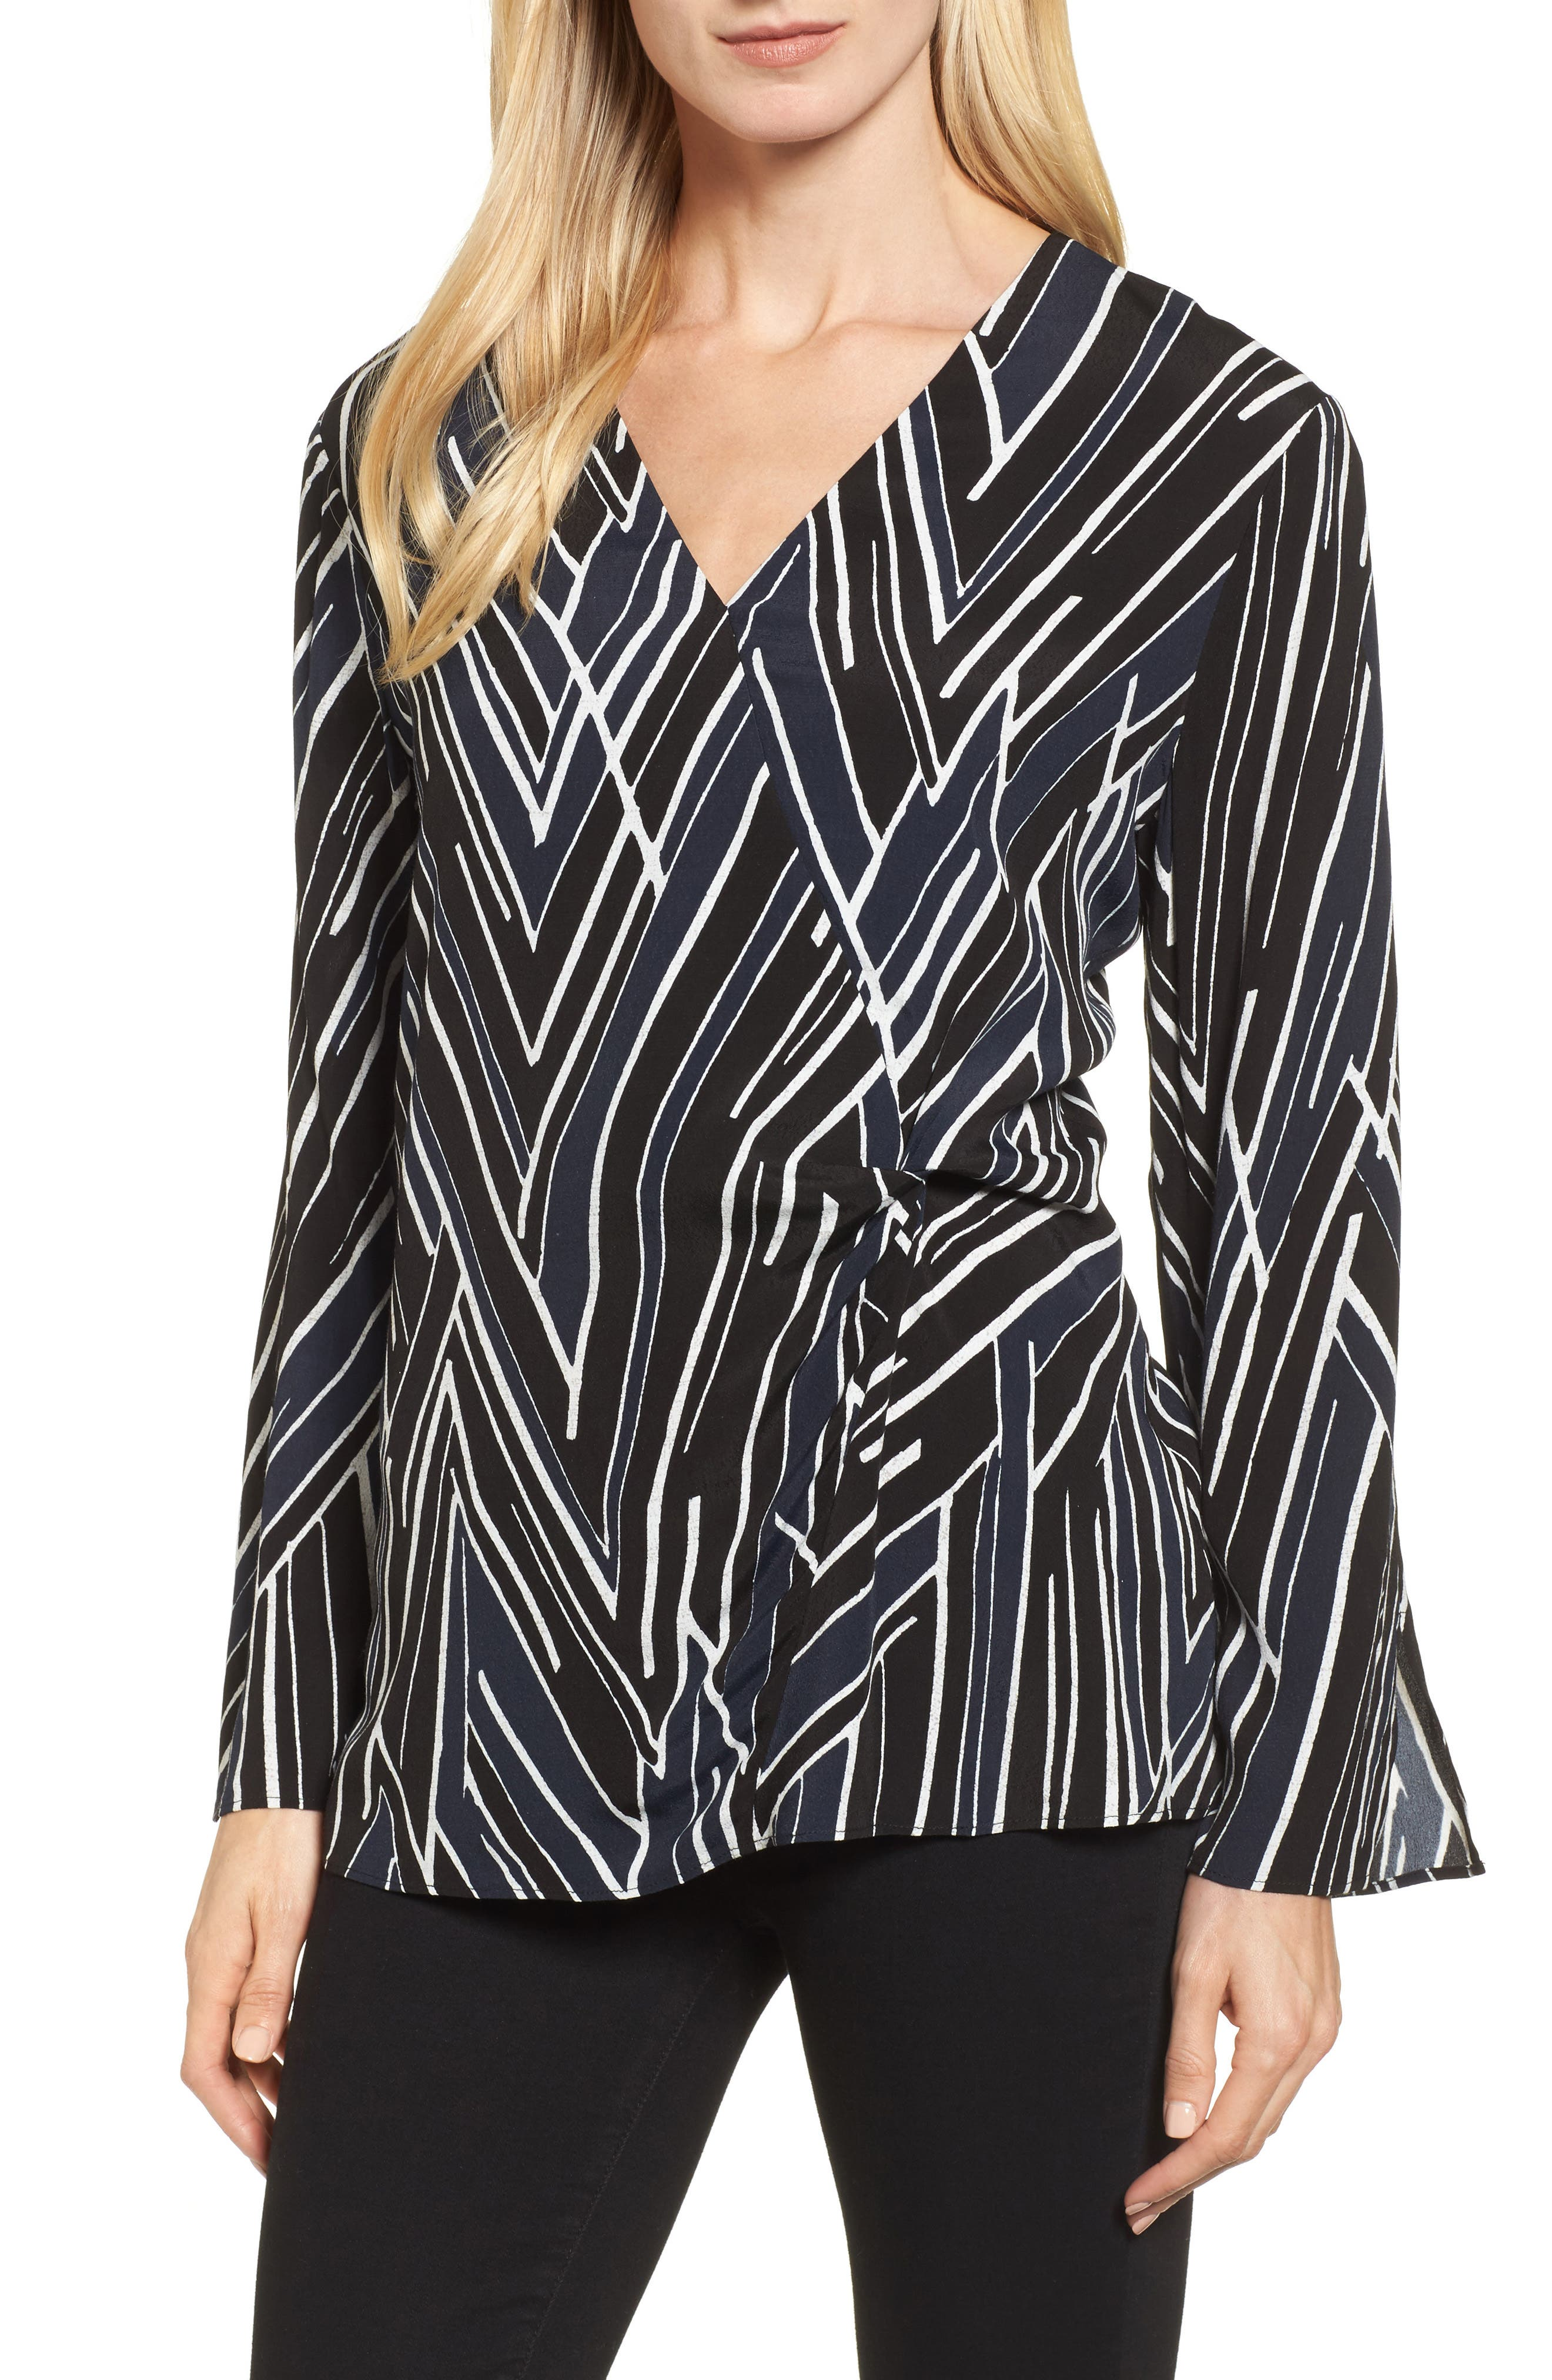 Bells and Whistles Top,                         Main,                         color, Black Multi